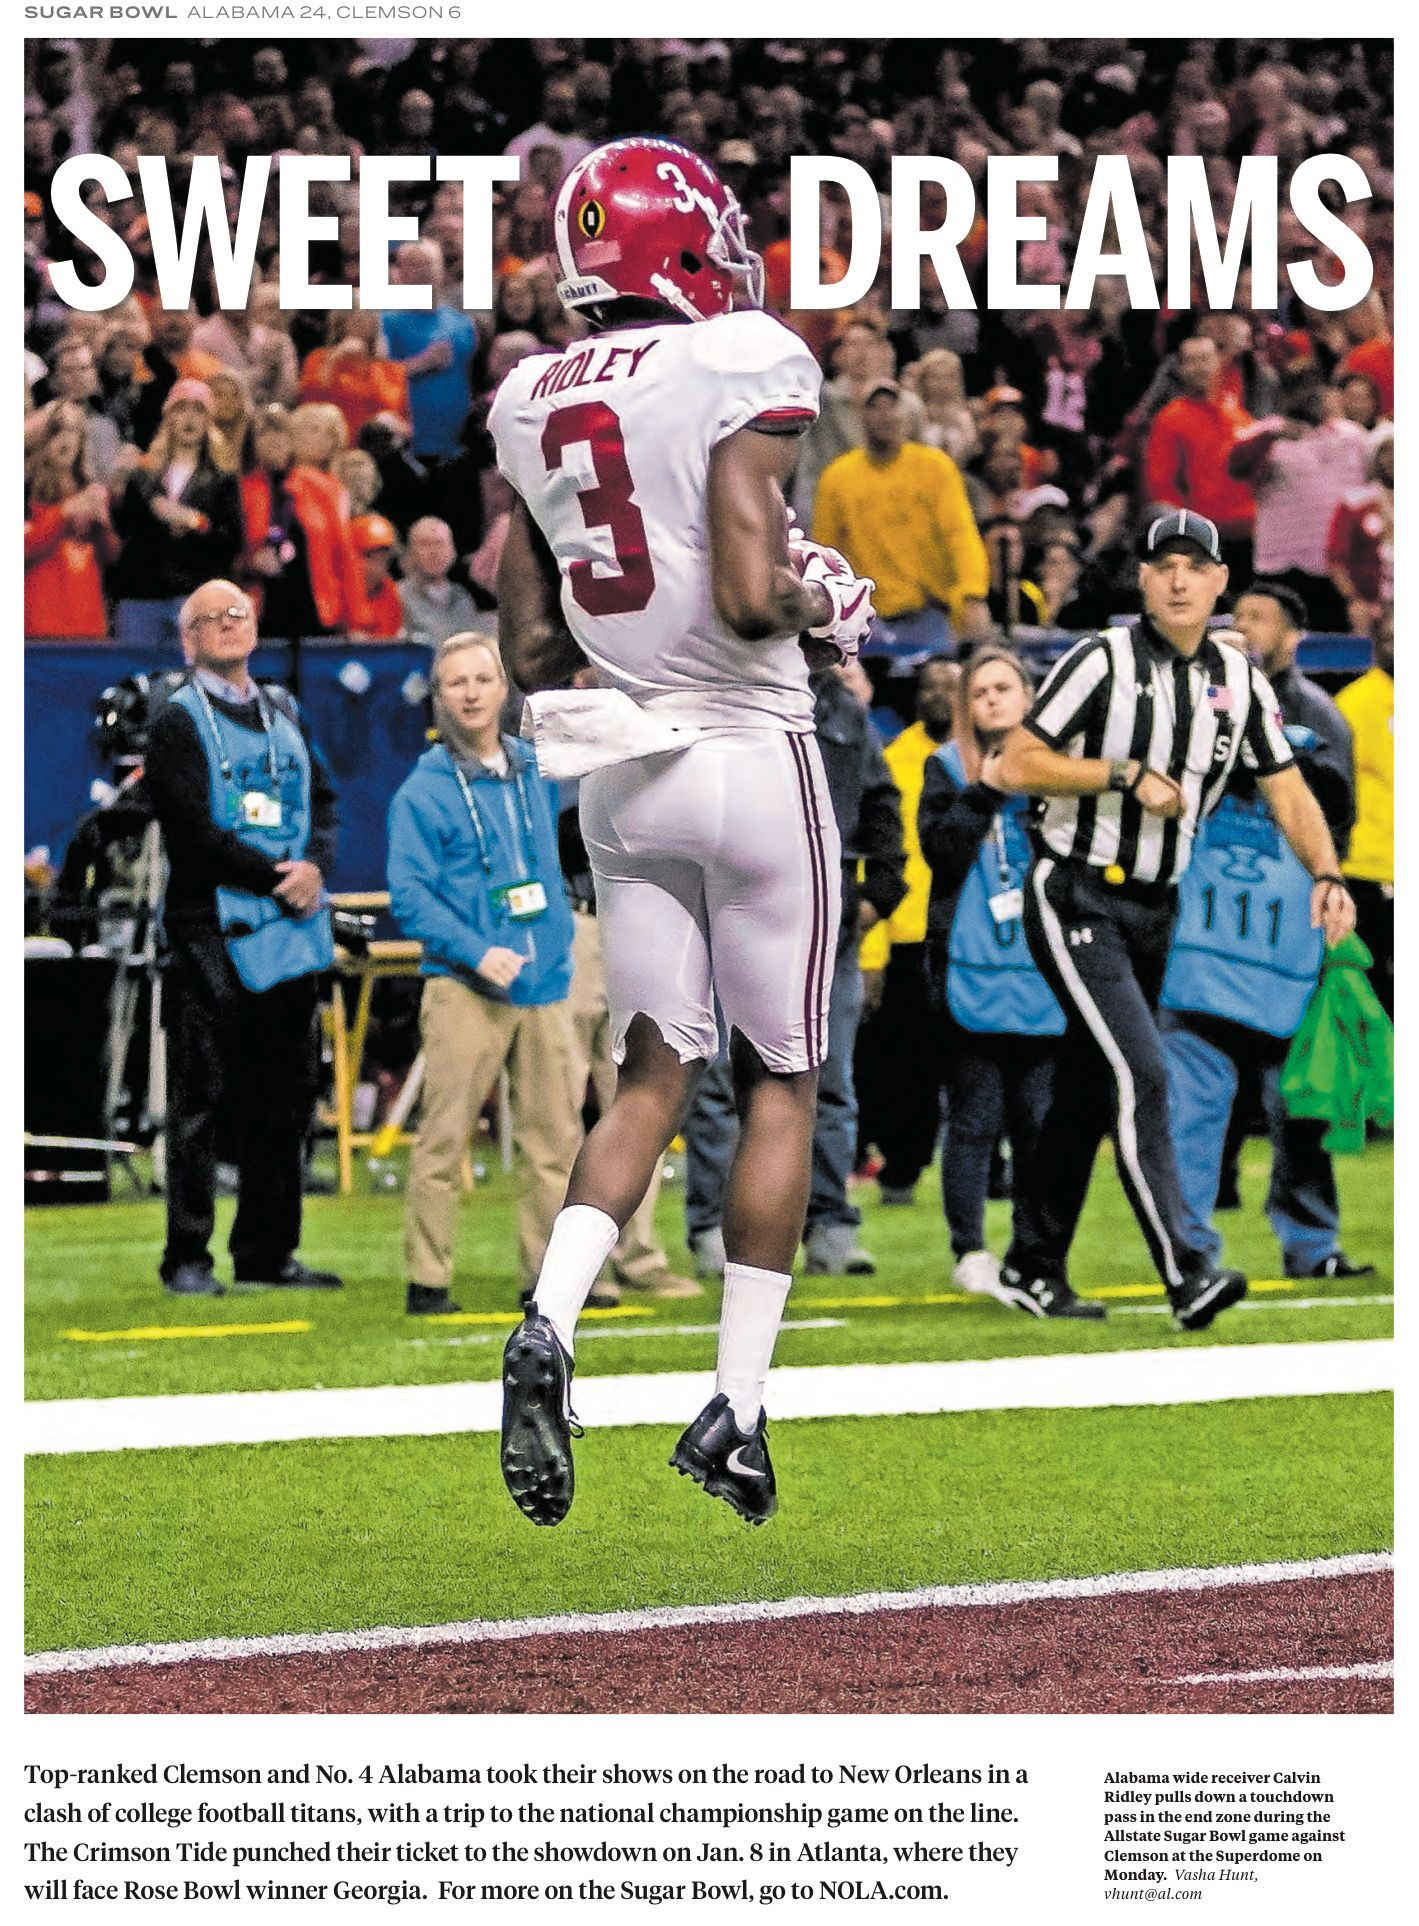 Sweet Dreams Calvin Ridley From The Front Page Of The Huntsville Times On Jan 2 2018 After Bama S 24 Crimson Tide Football Alabama Crimson Tide Alabama